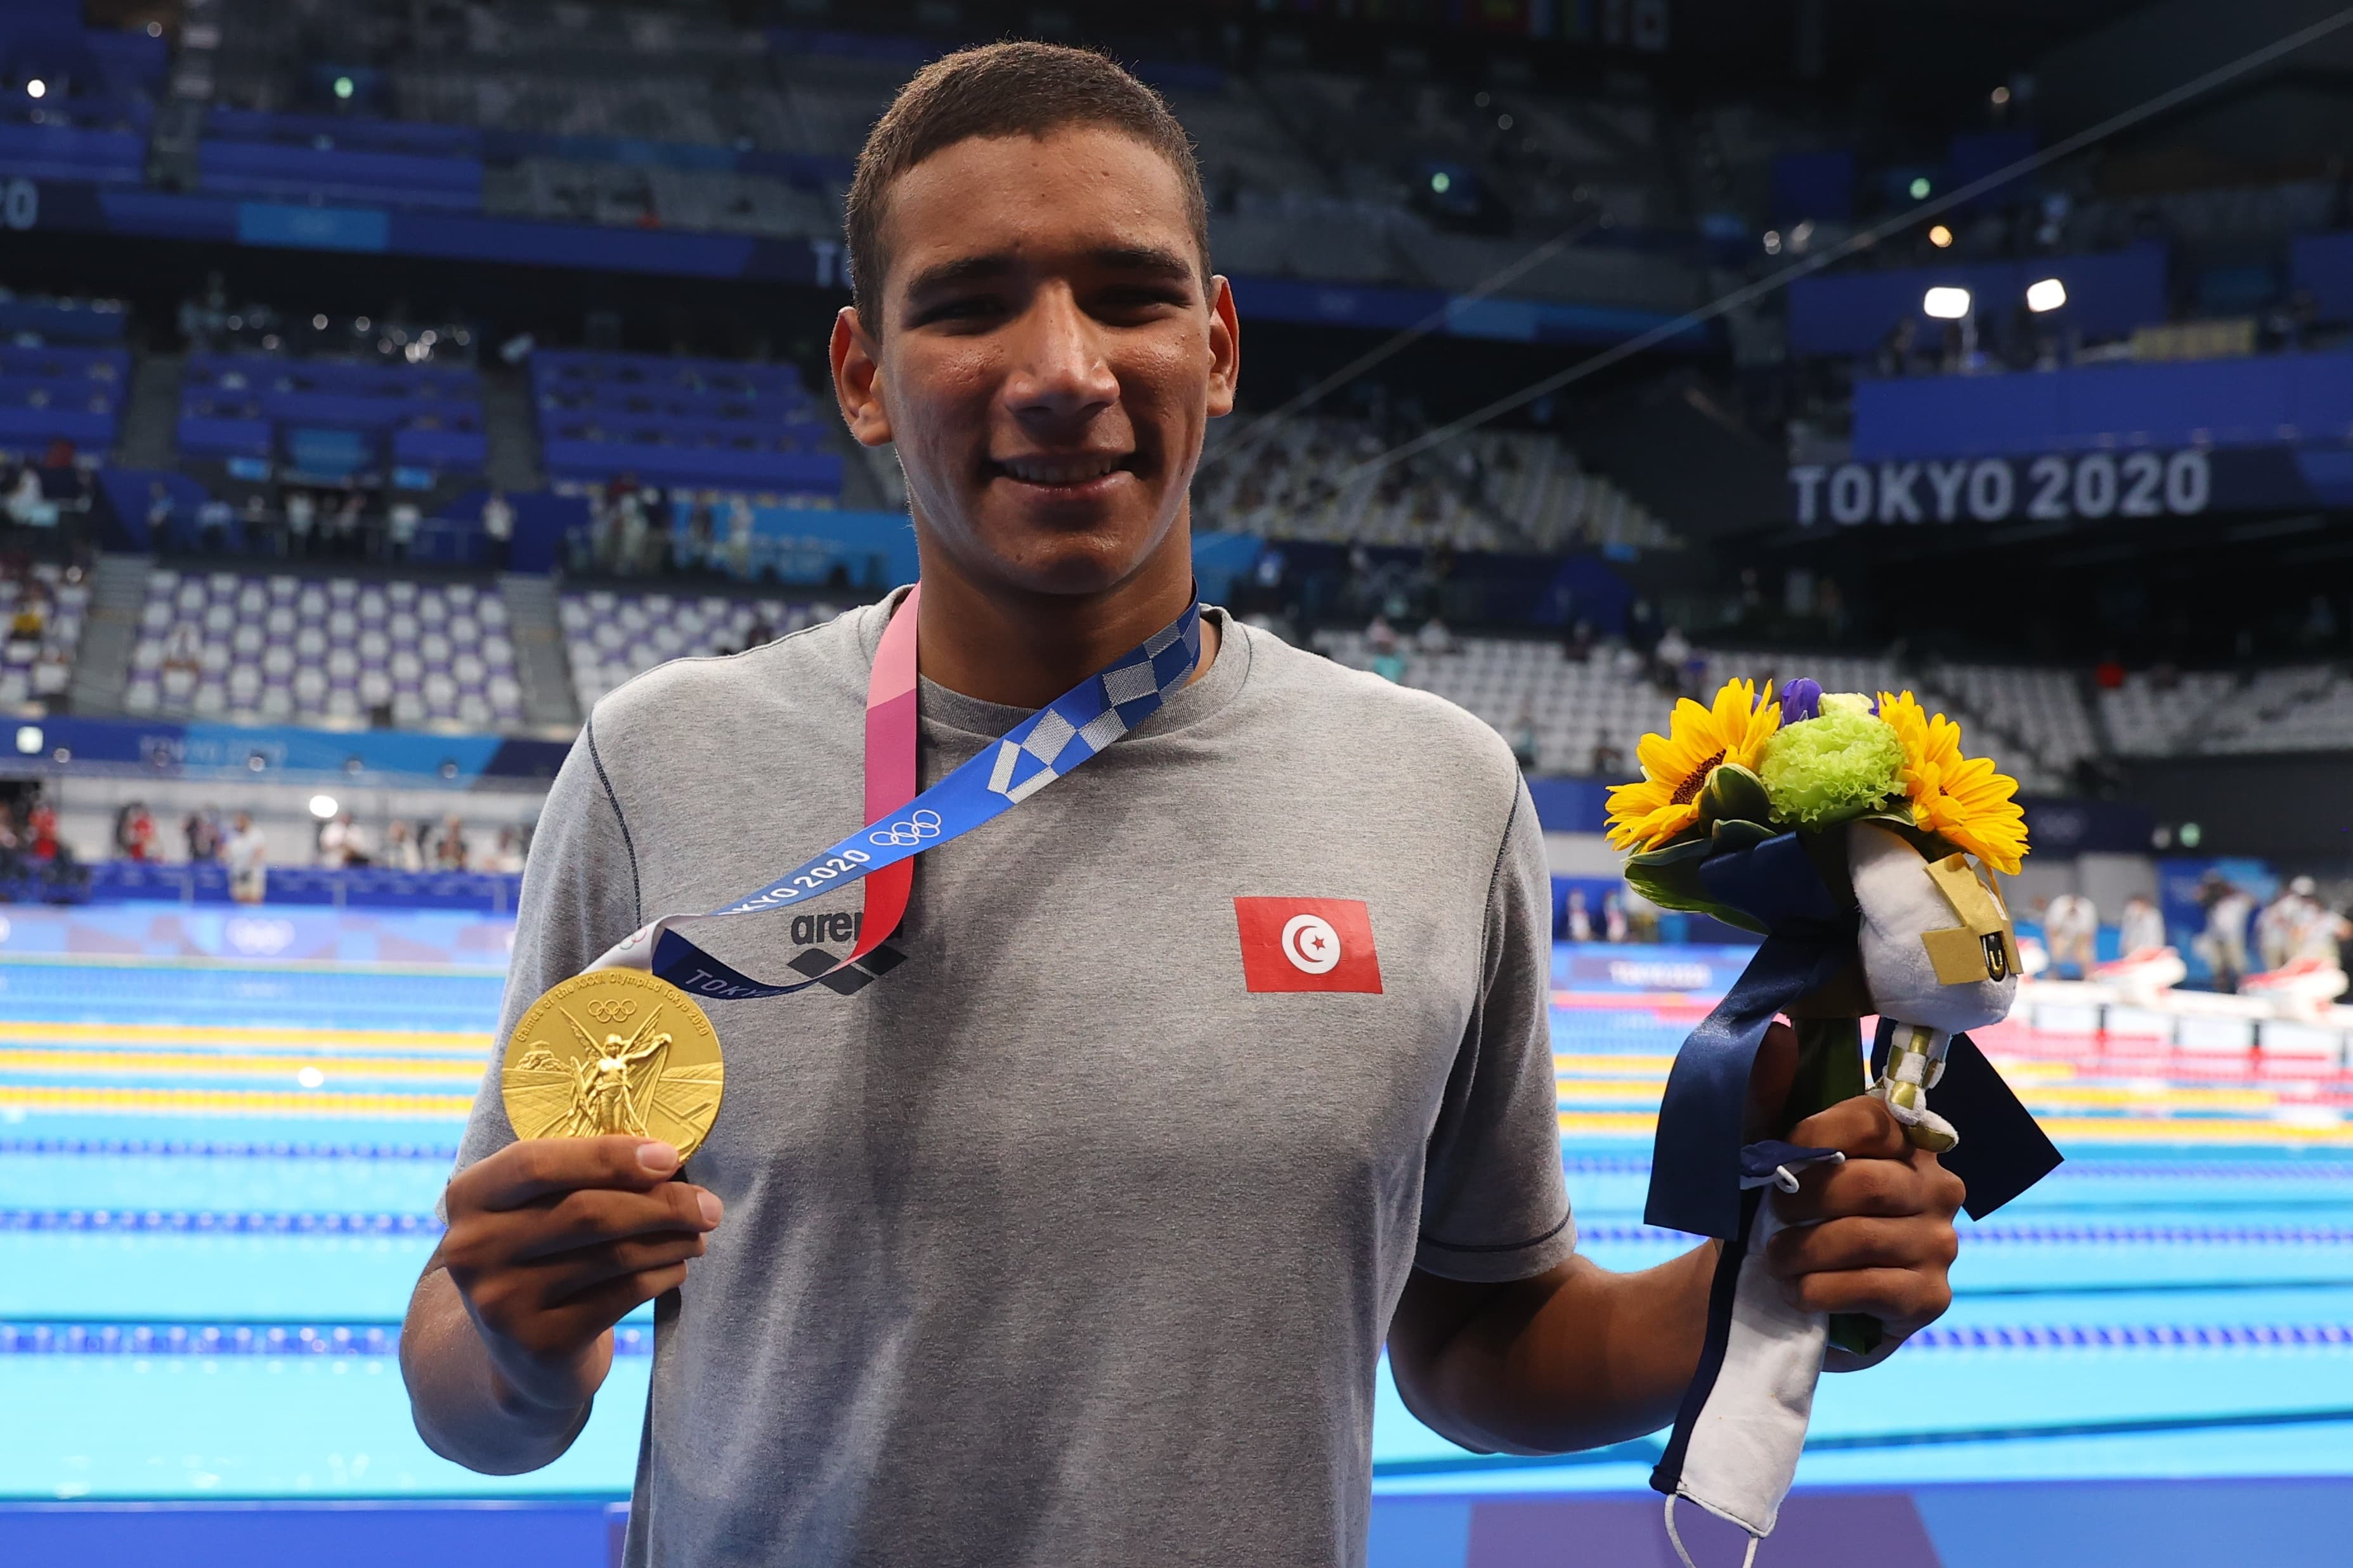 18-year-old Ahmed Hafnaoui stunned the swimming superpowers with victory in the men's 400m freestyle. Reuters